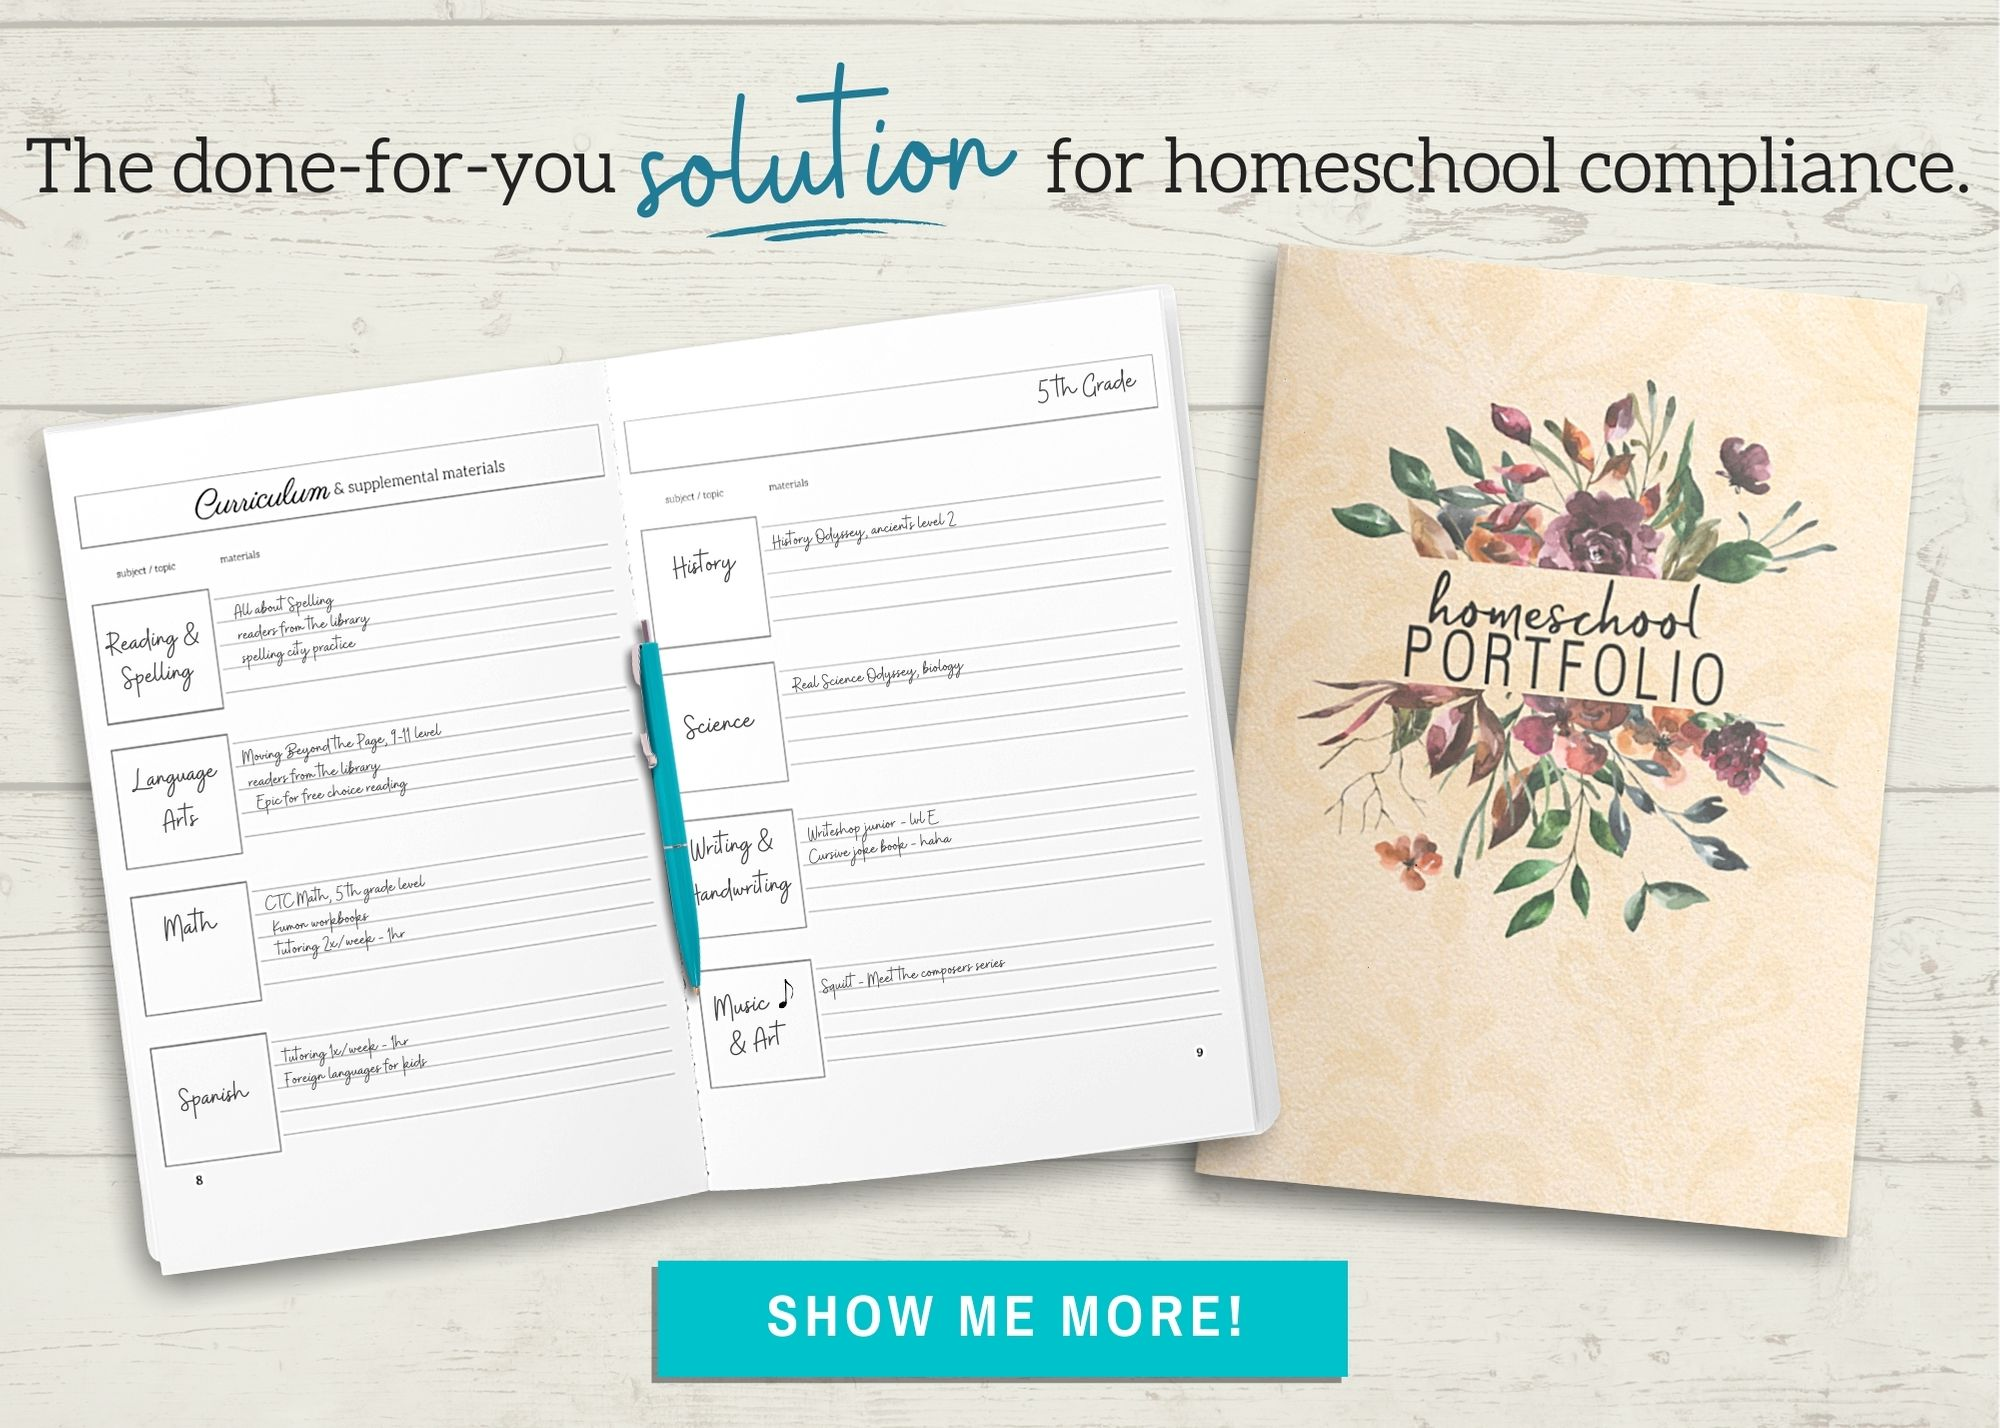 The done-for-you solution for homeschool compliance! Homeschool Portfolio, Show me more!